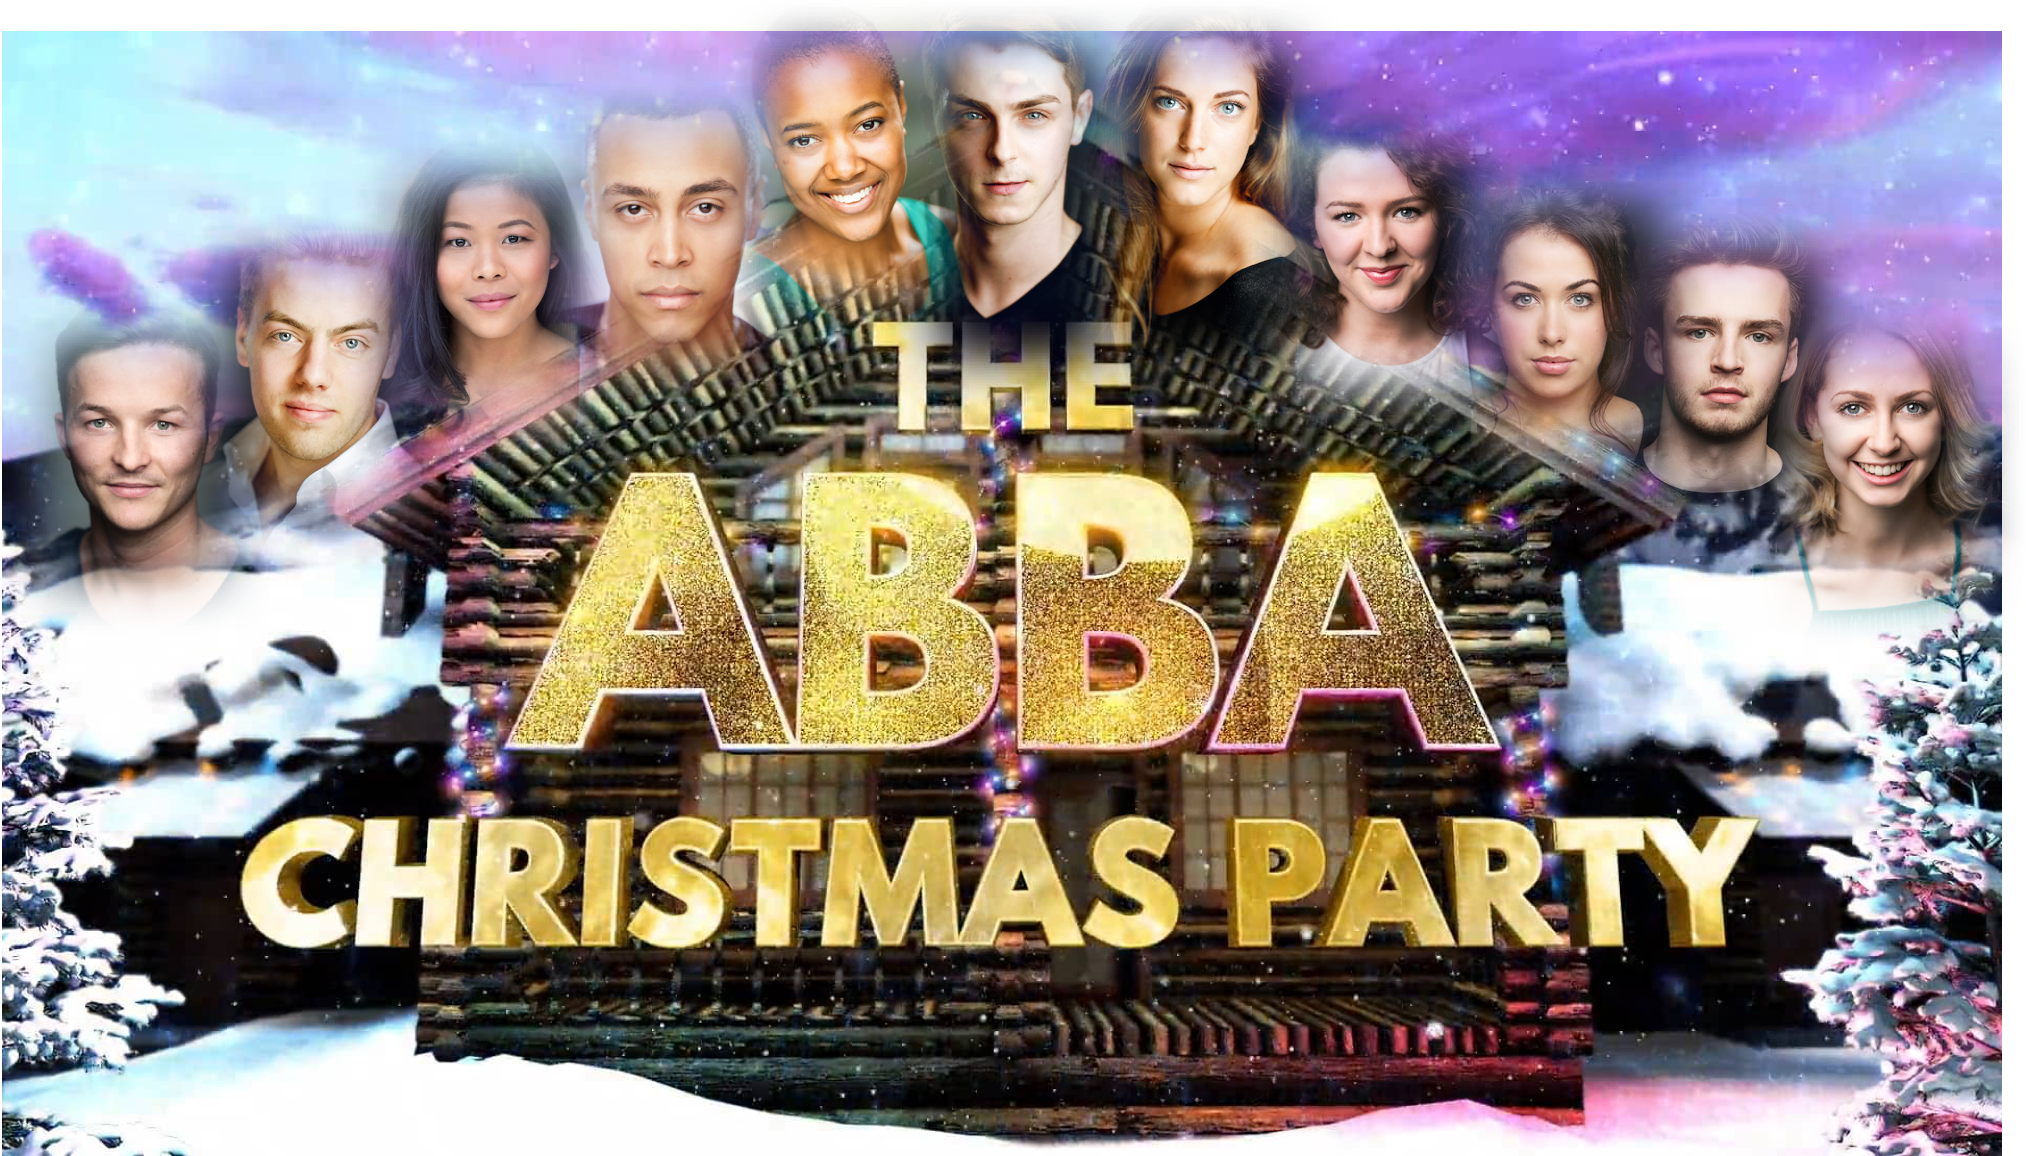 Current Urdang students can be seen joining the Abba Christmas Party on ITV